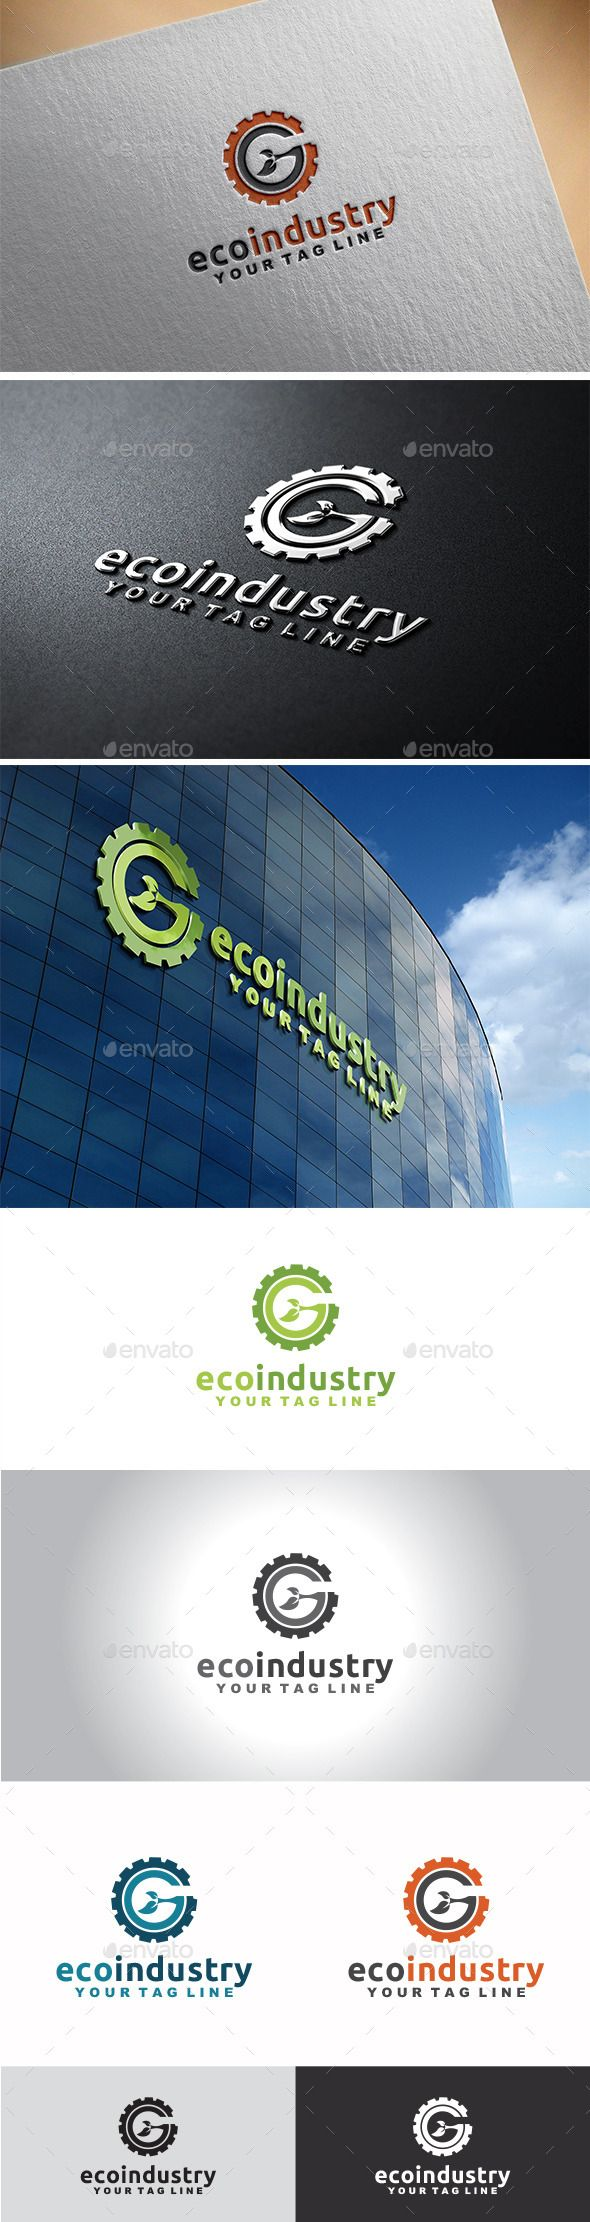 Eco Industry - Logo Design Template Vector #logotype Download it here: http://graphicriver.net/item/eco-industry-logo/11282311?s_rank=933?ref=nesto